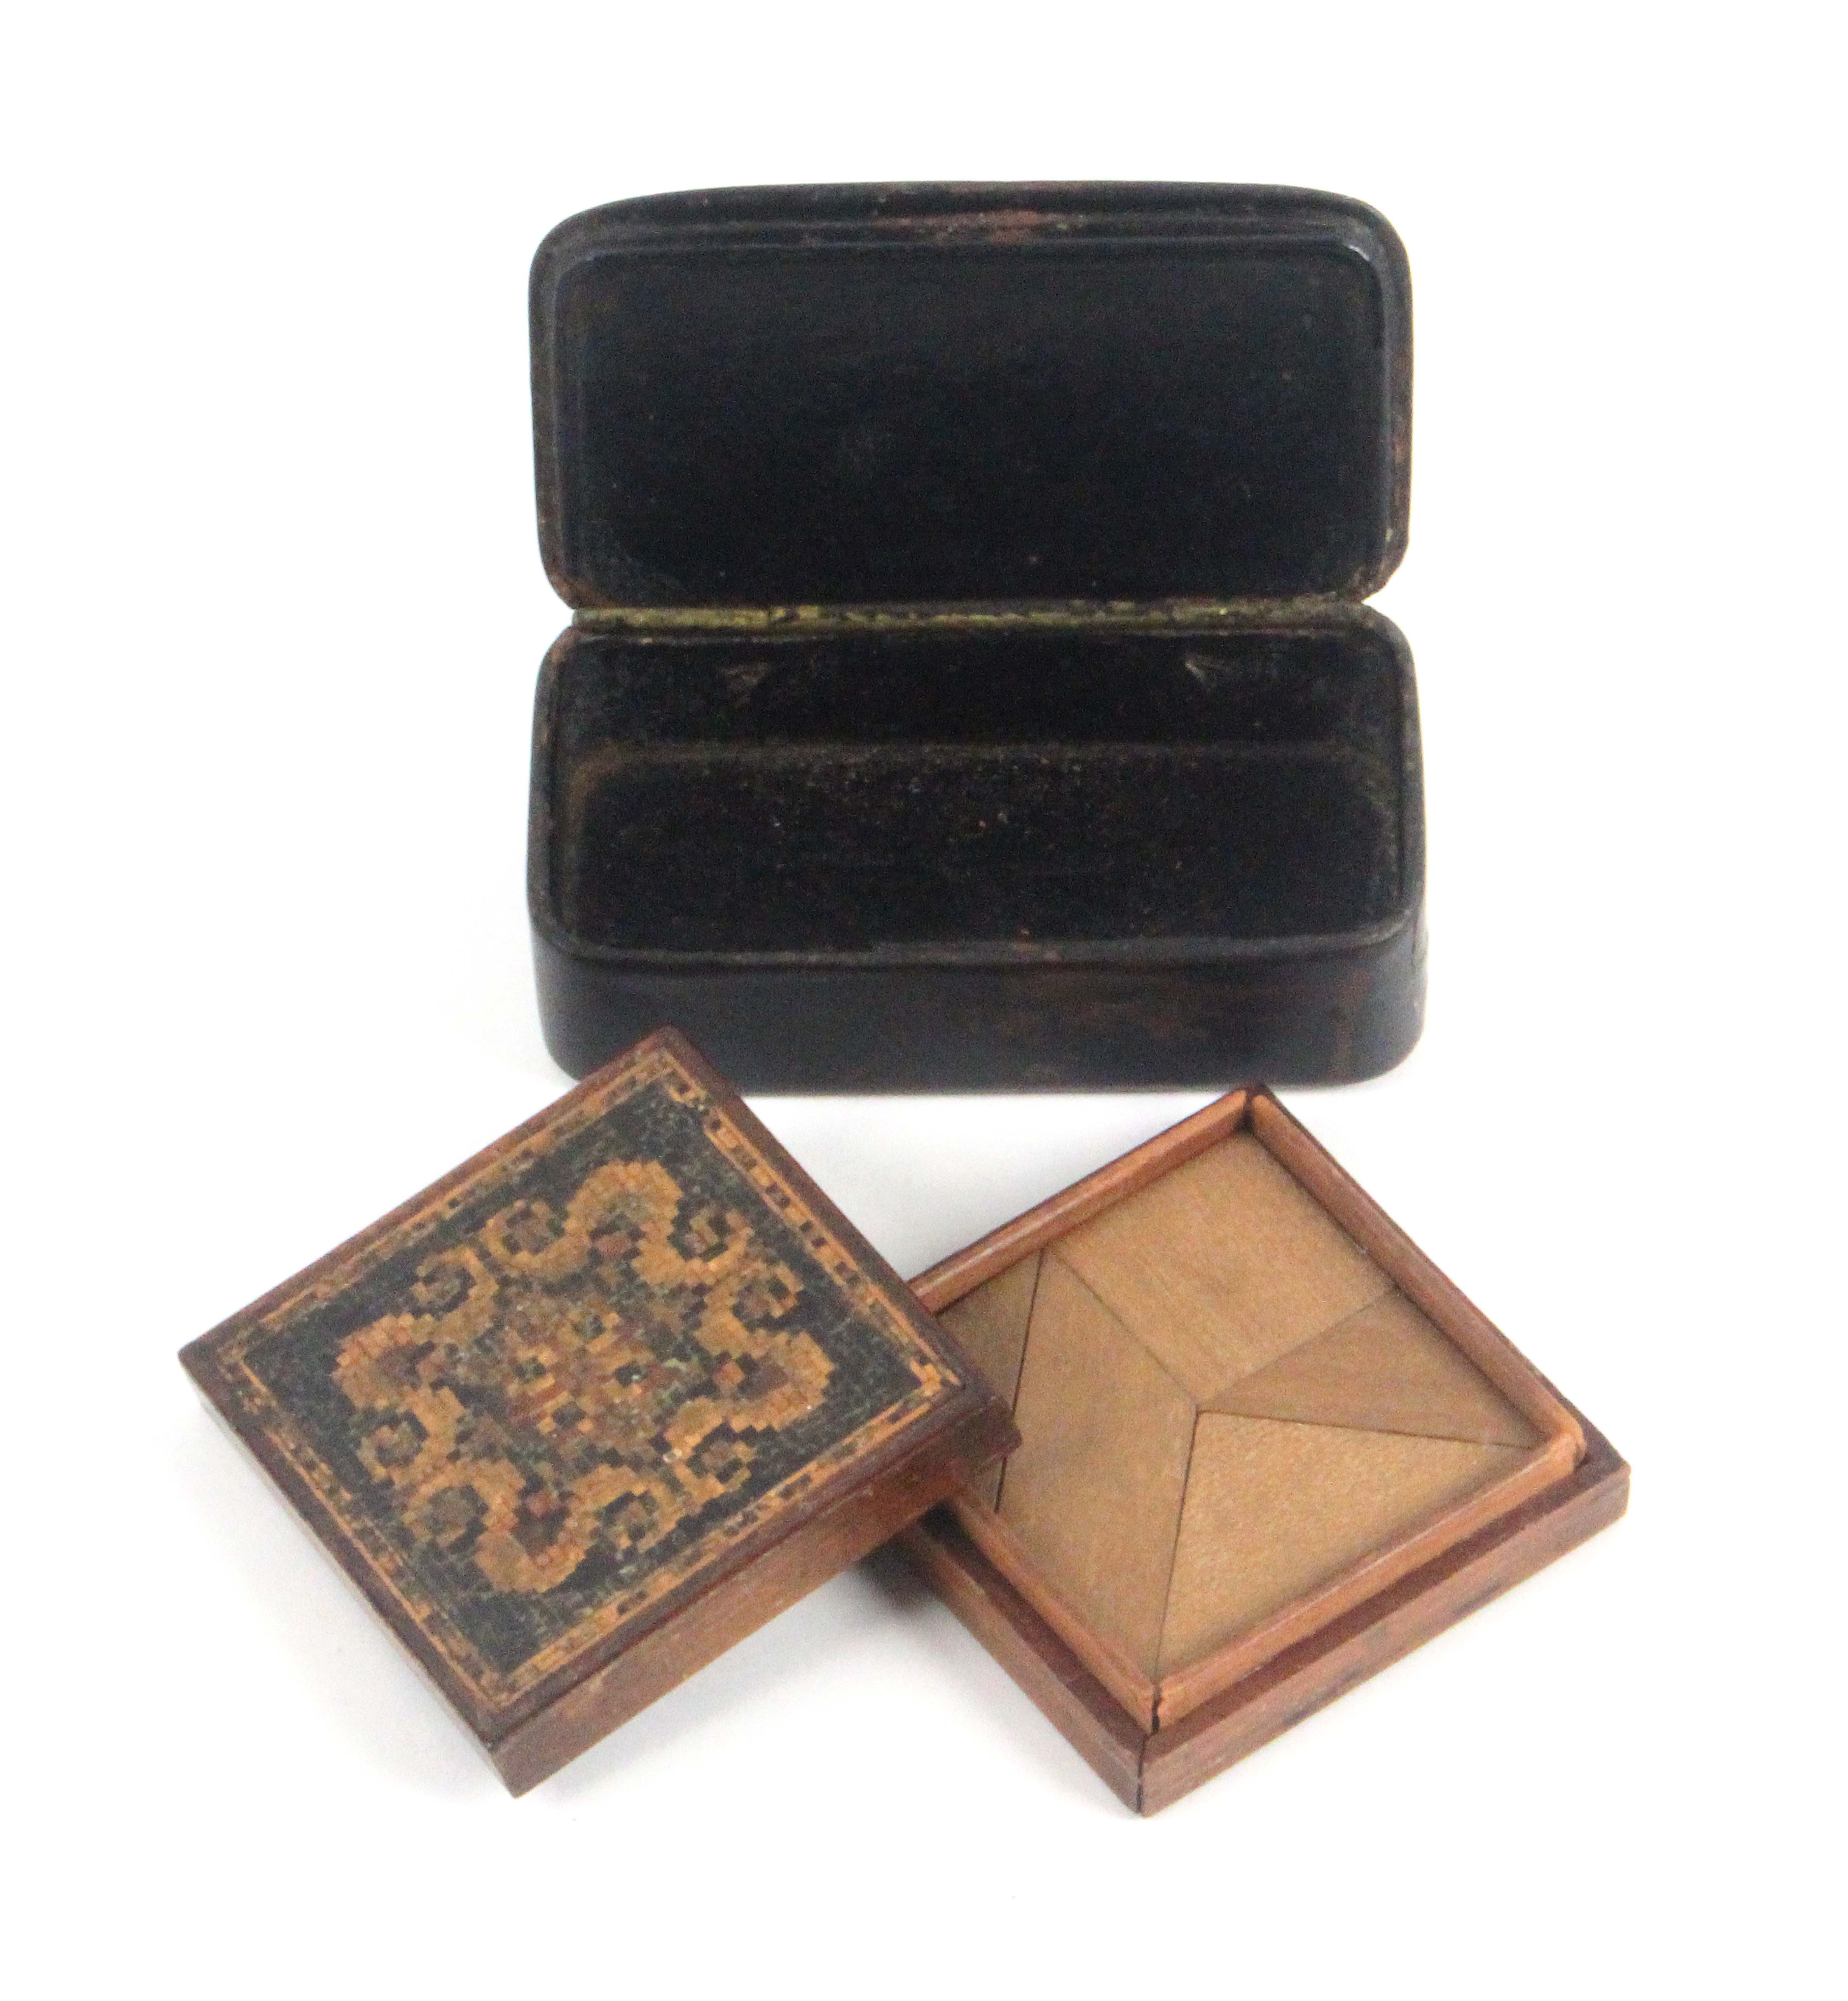 Two Tunbridge ware boxes, comprising a papier mache snuff box the lid with a fine inset mosaic - Image 2 of 2